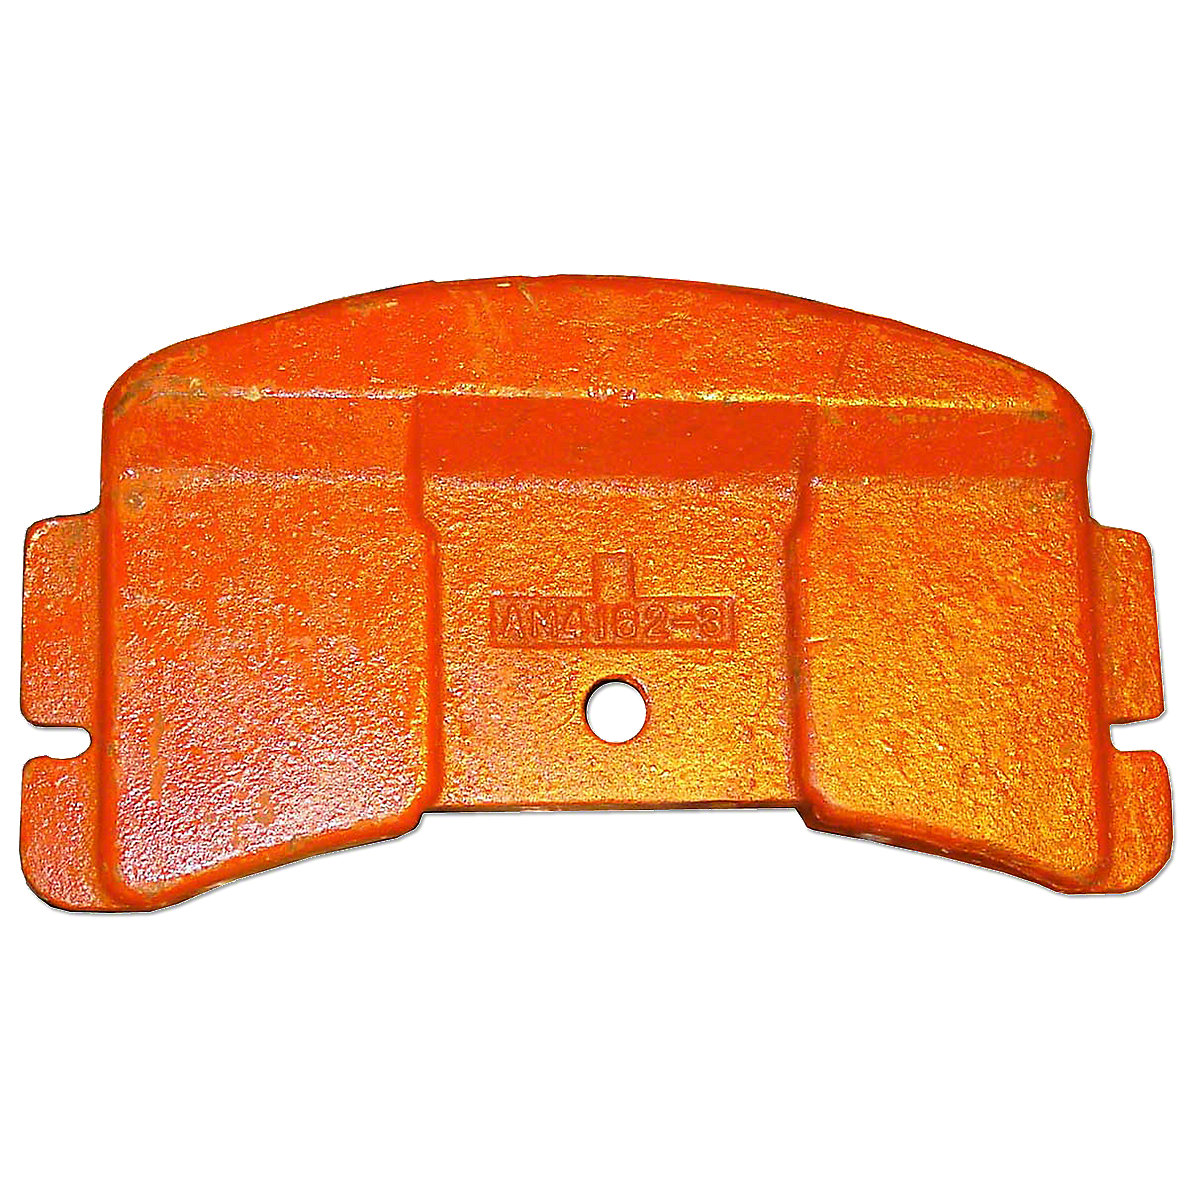 Front End Weight For Allis Chalmers: D15, D17, D19, RC, WC, WD, WD45, WF.